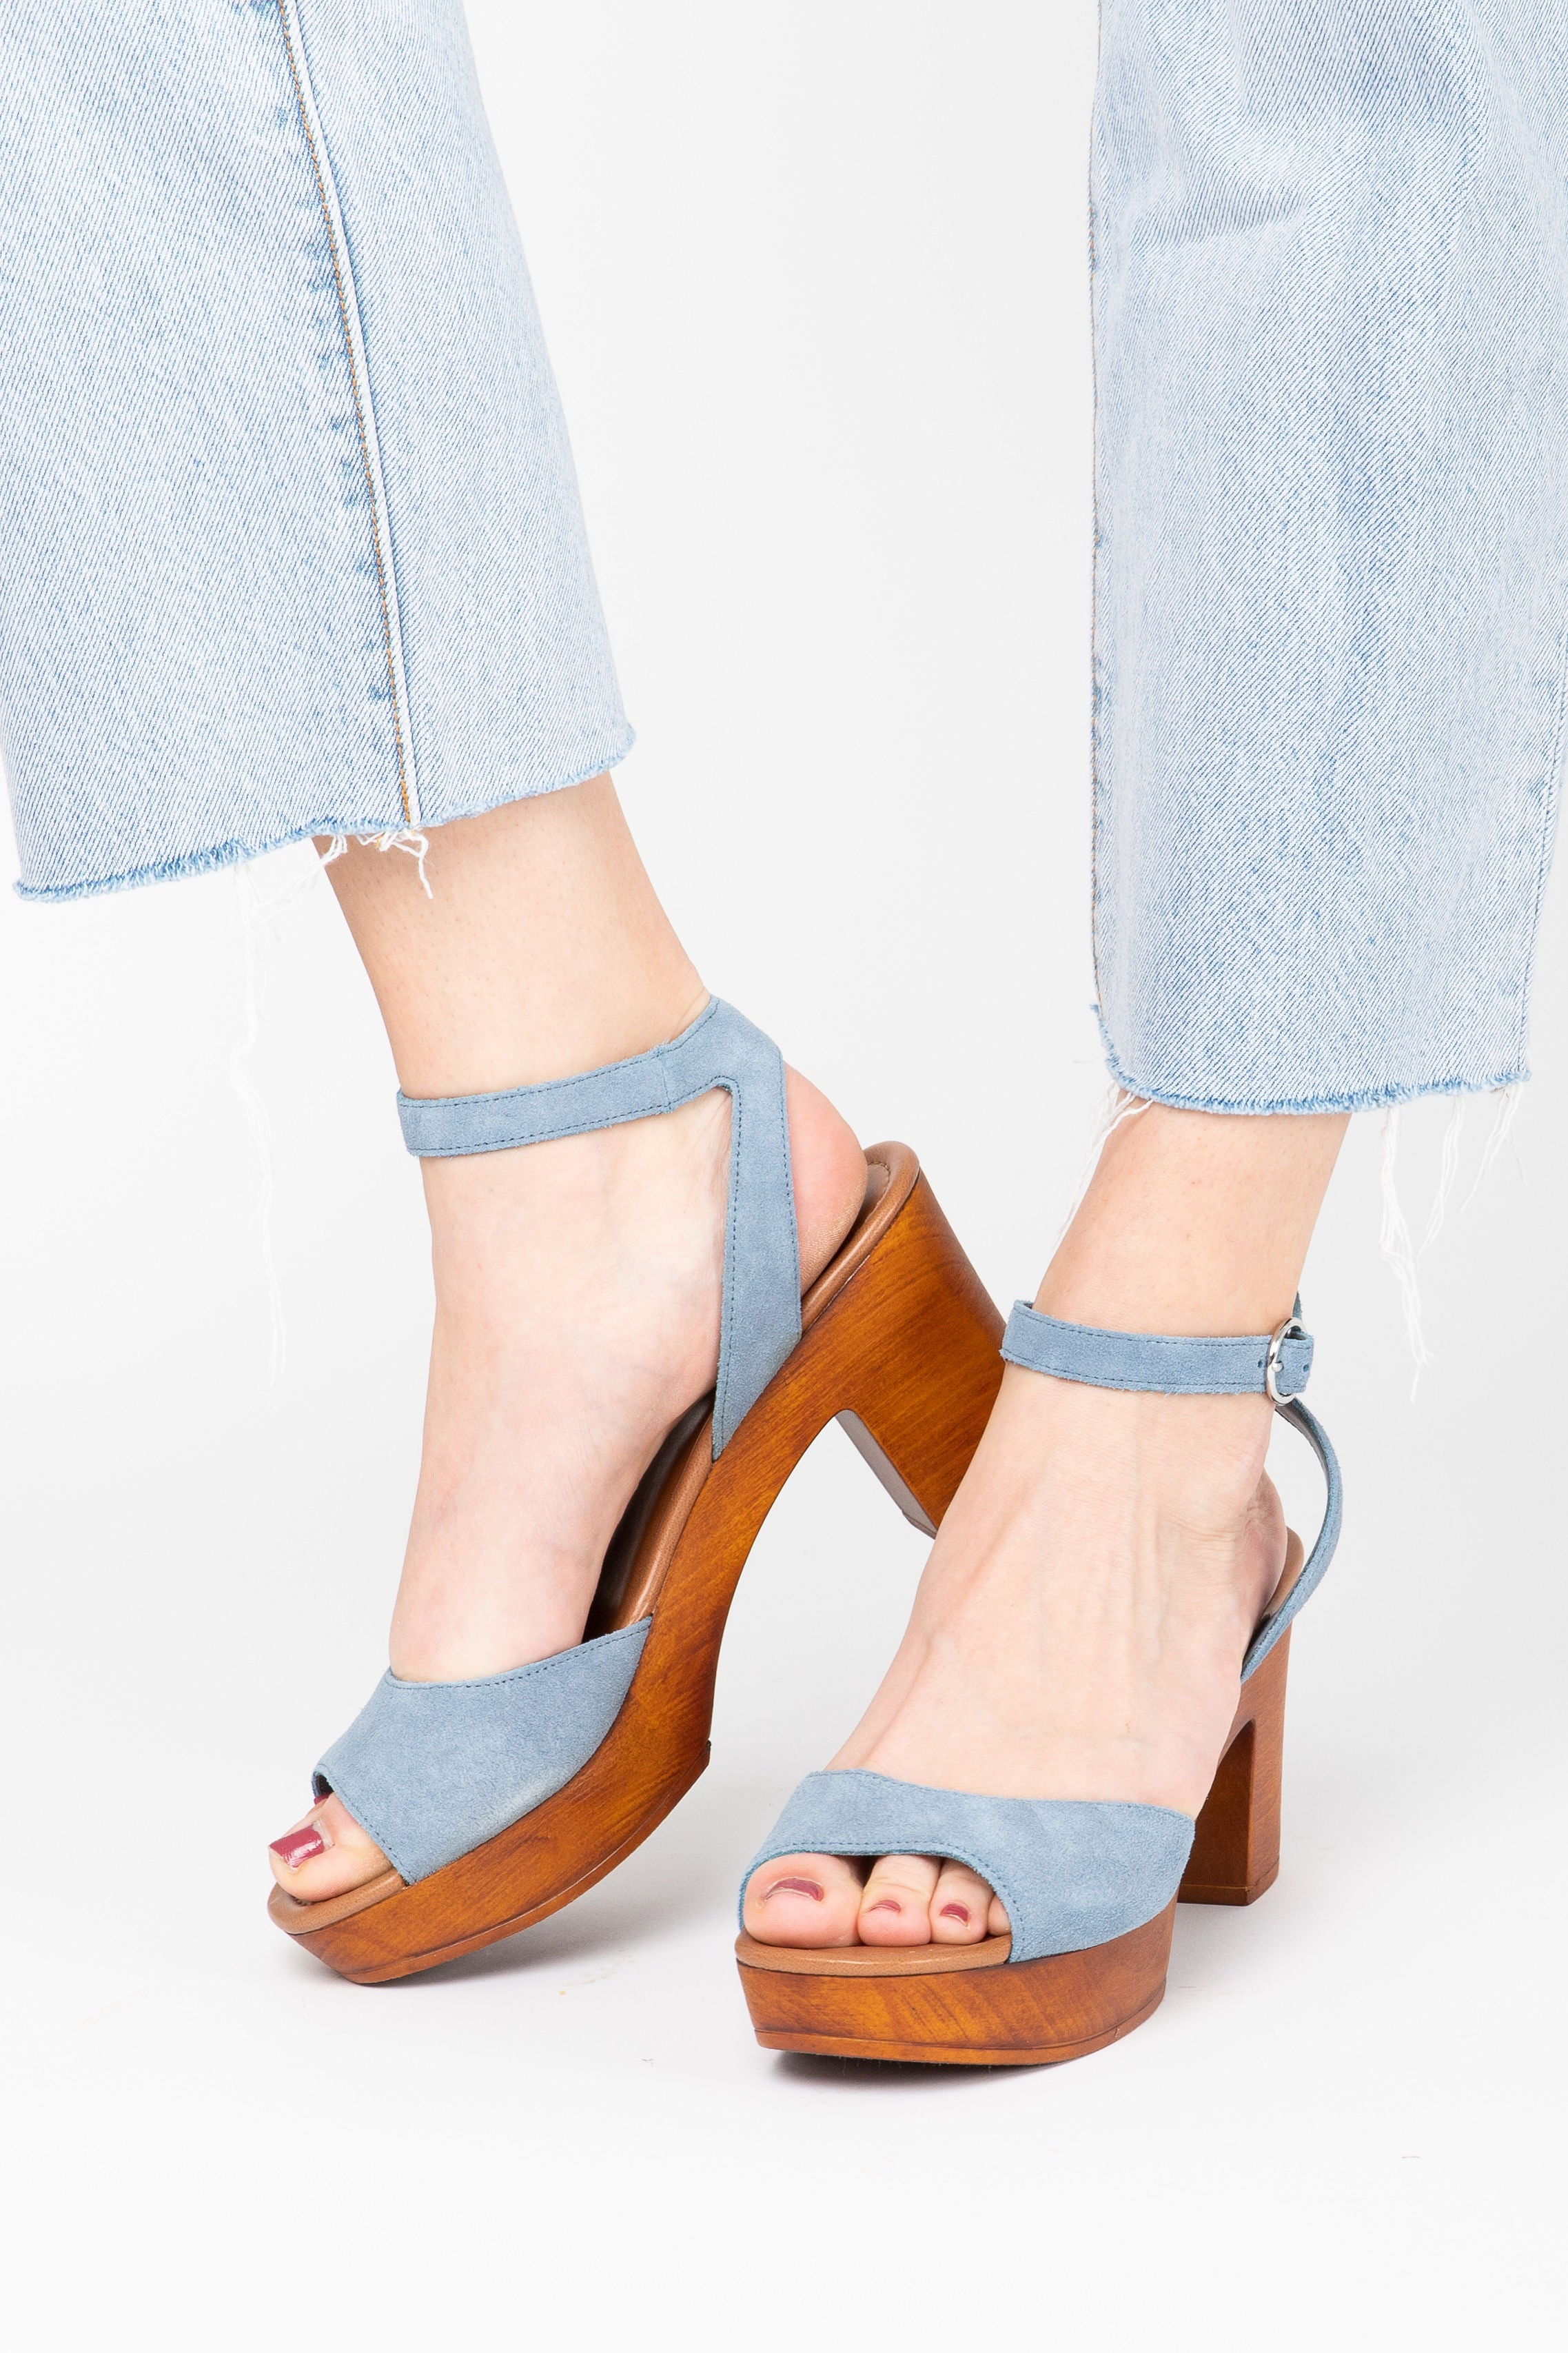 Steve Madden: Lonnie Chunky Heel in Light Blue